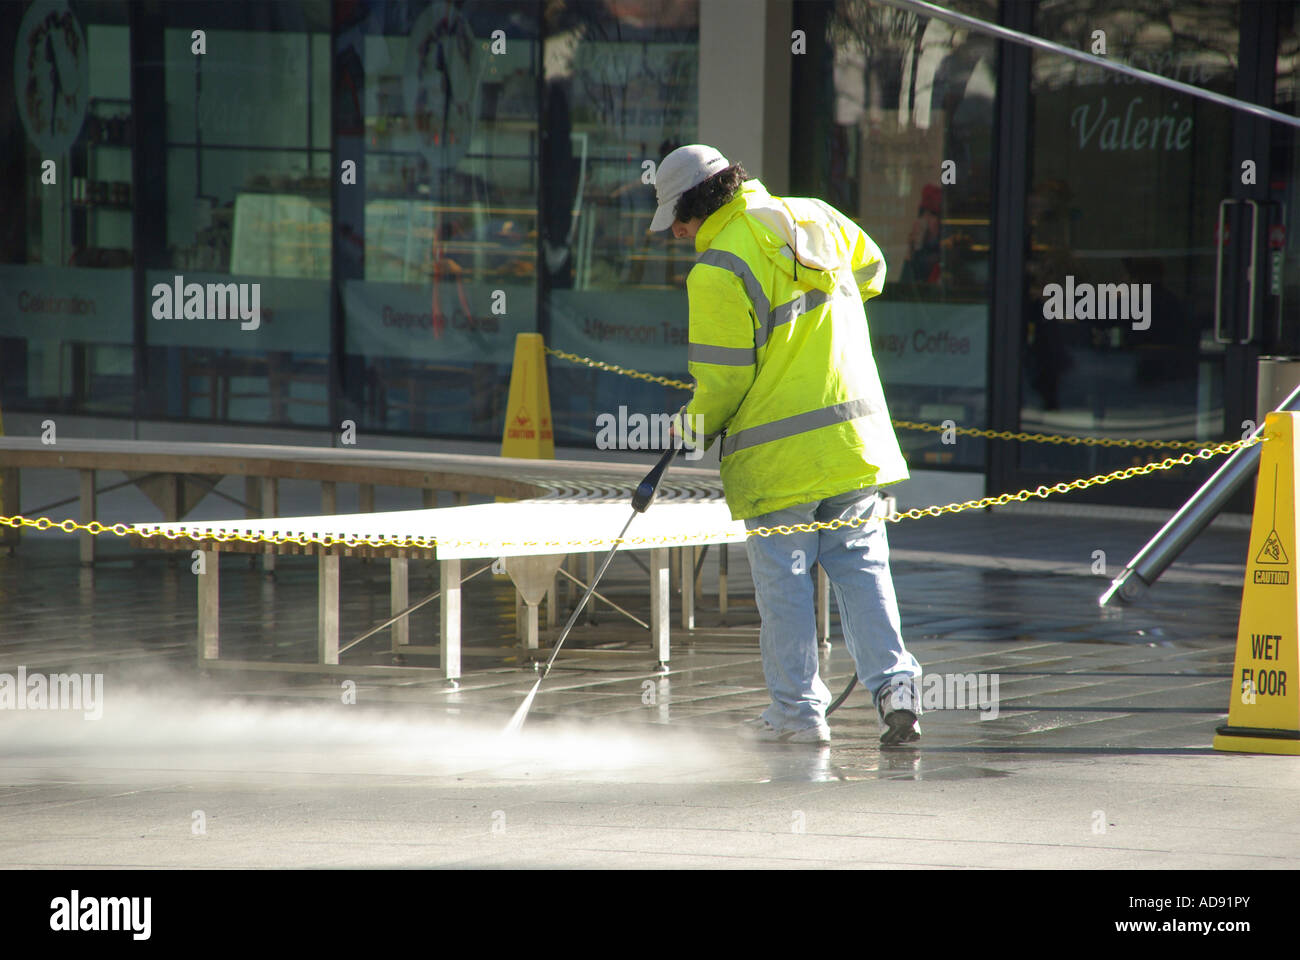 London high pressure water spray jet being used to clean paving of chewing gum & other grot by operator wearing - Stock Image